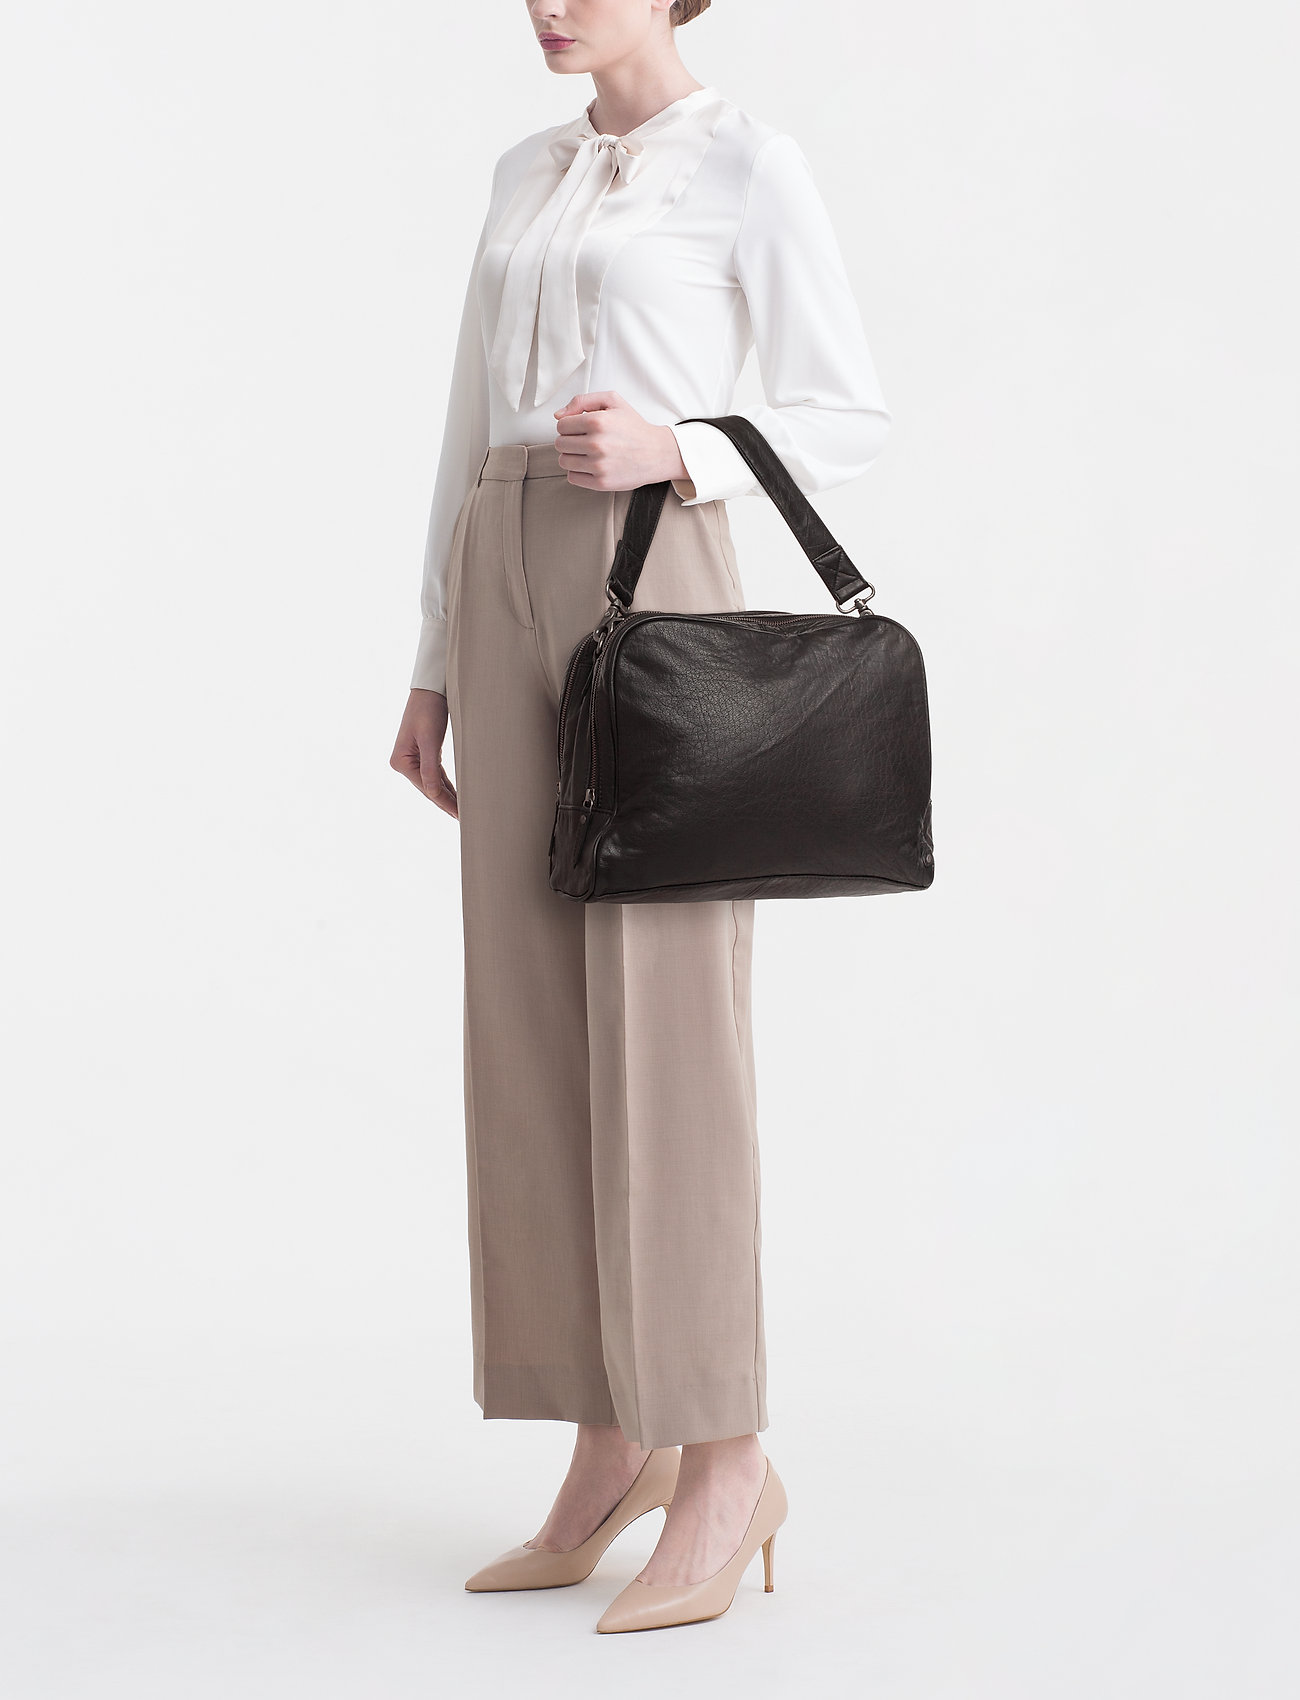 Bagblack180 Large Large Large Bagblack180 Large Large Bagblack180 Large Bagblack180 Bagblack180 Large Bagblack180 Large Bagblack180 DH2E9IWY